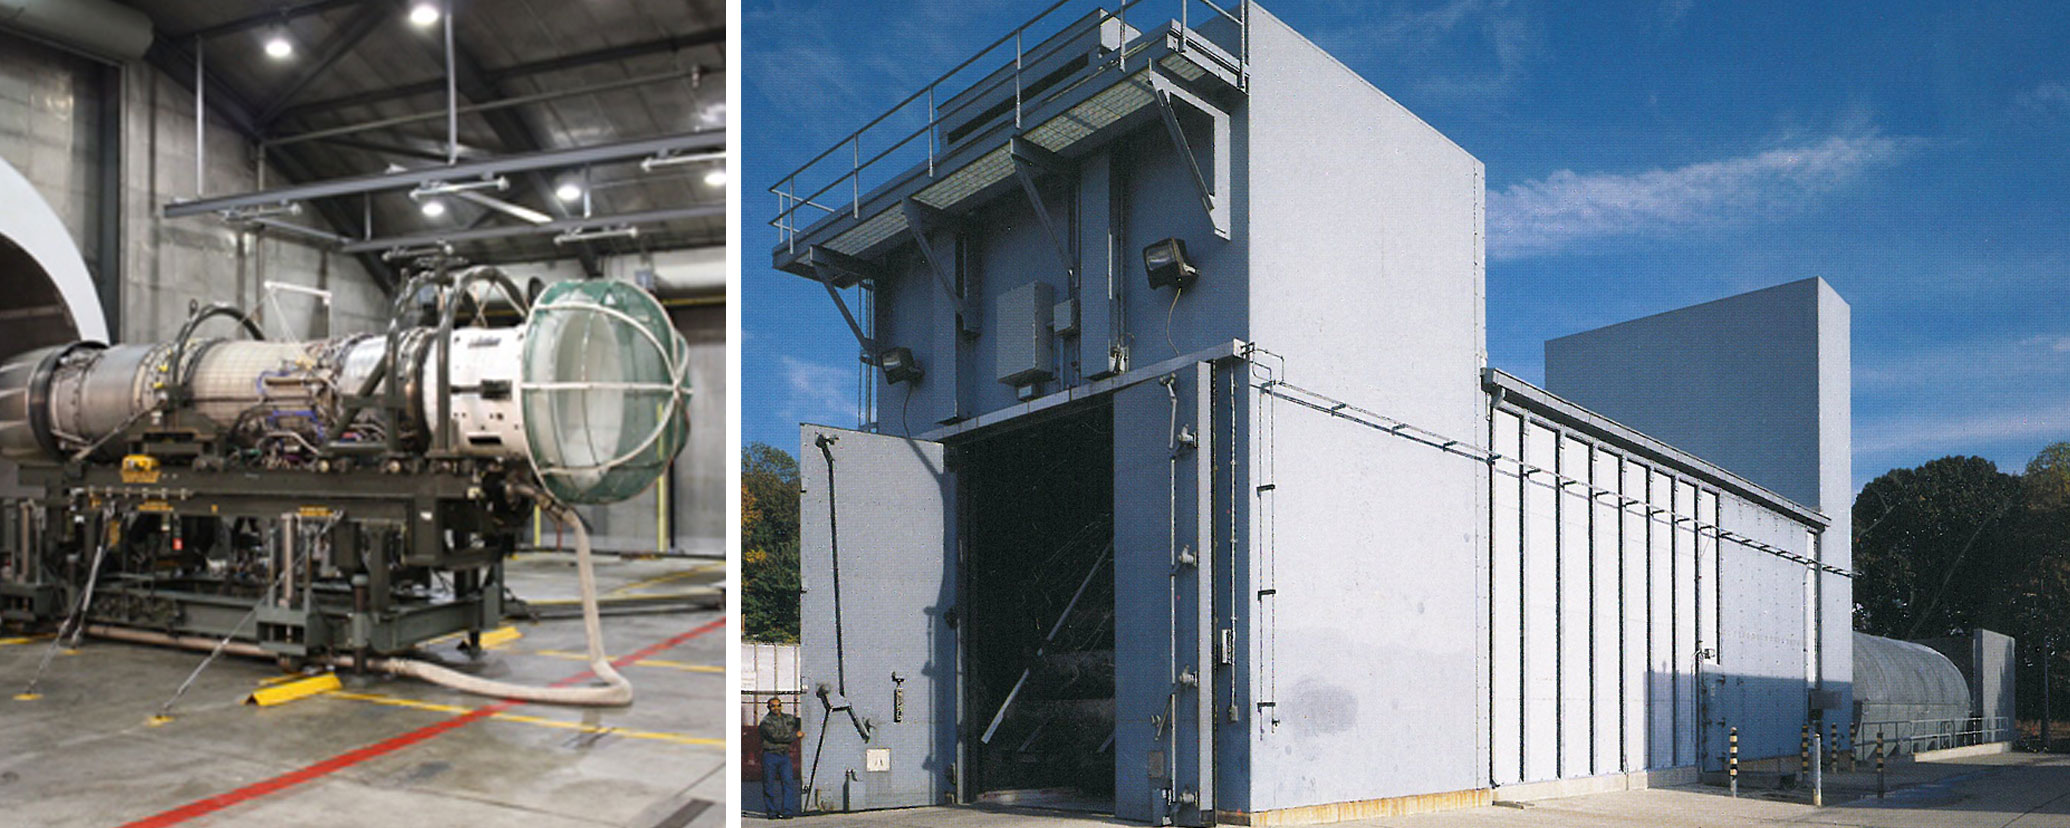 Jet Engine Test Hanger - Caddell Construction